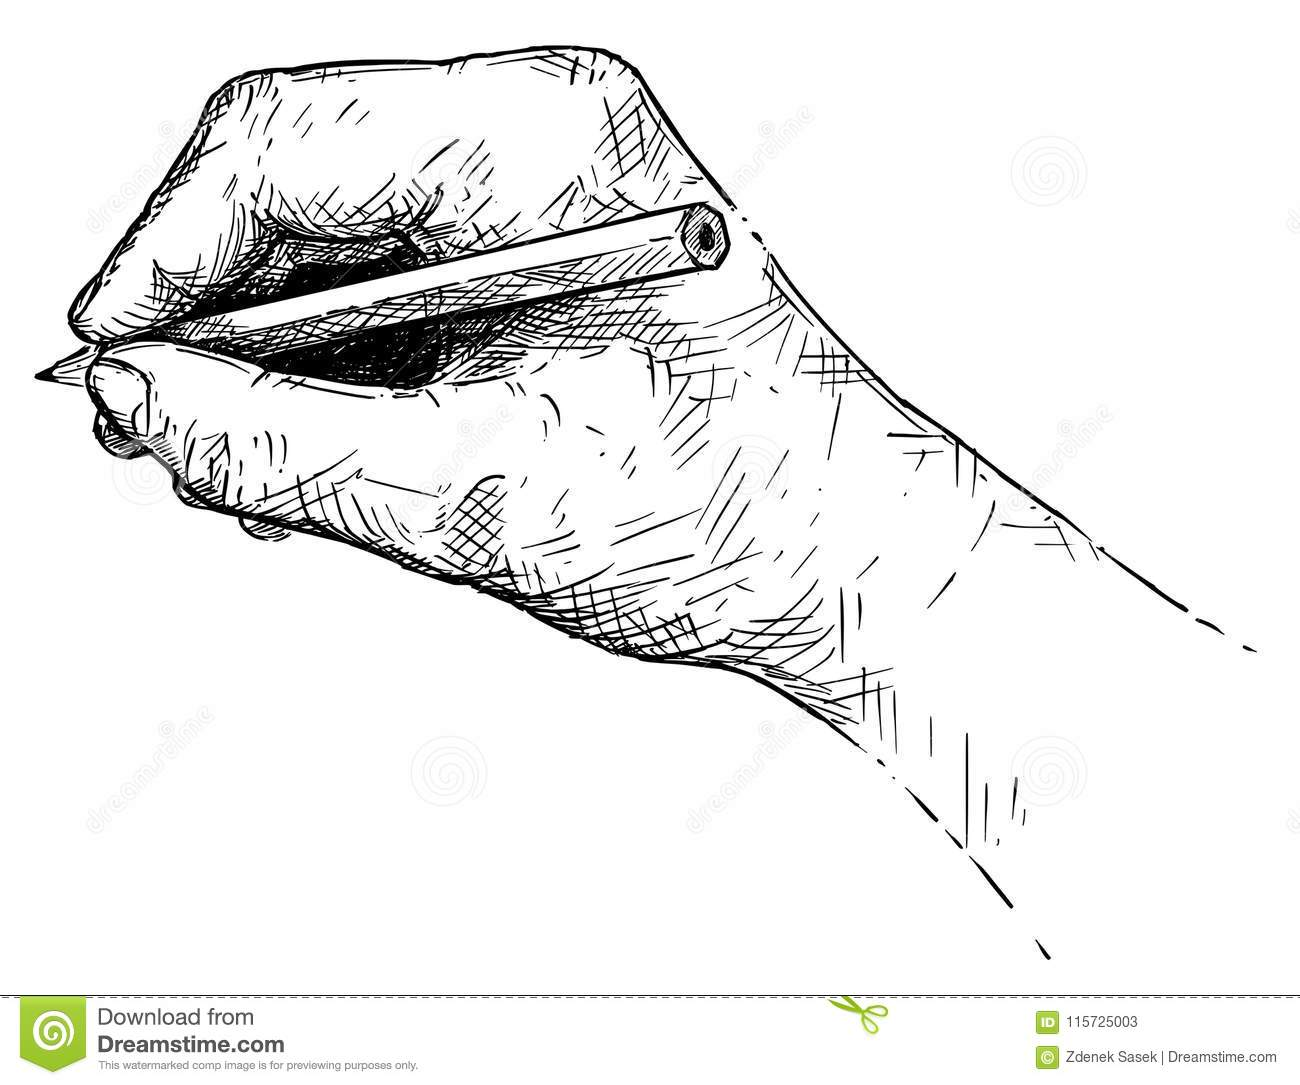 hight resolution of vector artistic illustration or drawing of hand writing or sketching with pencil